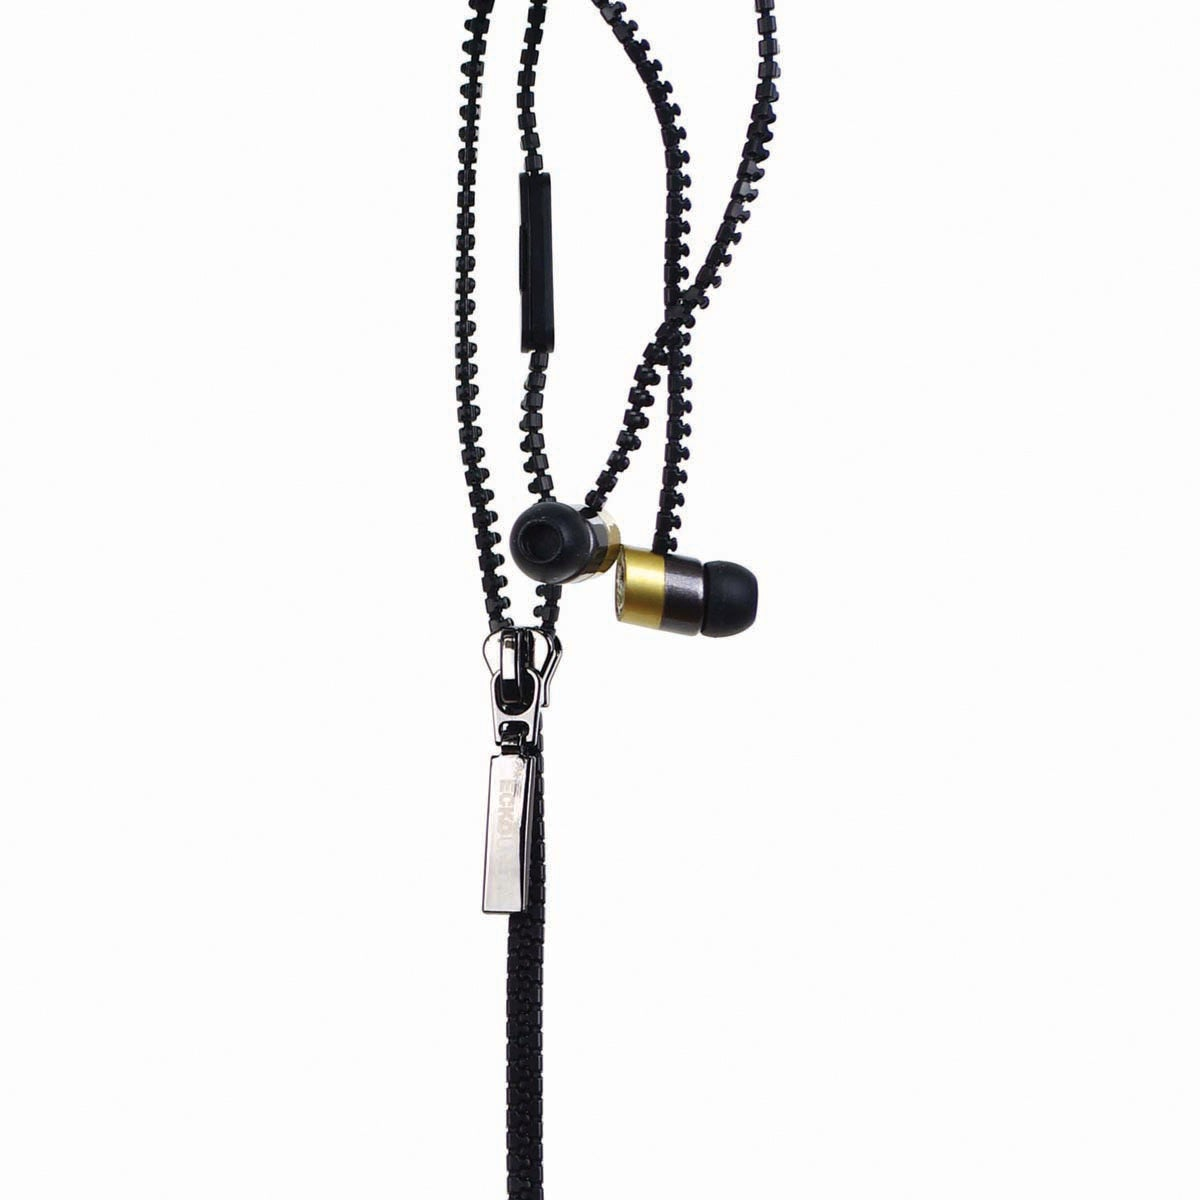 Marc Ecko Ear Bud